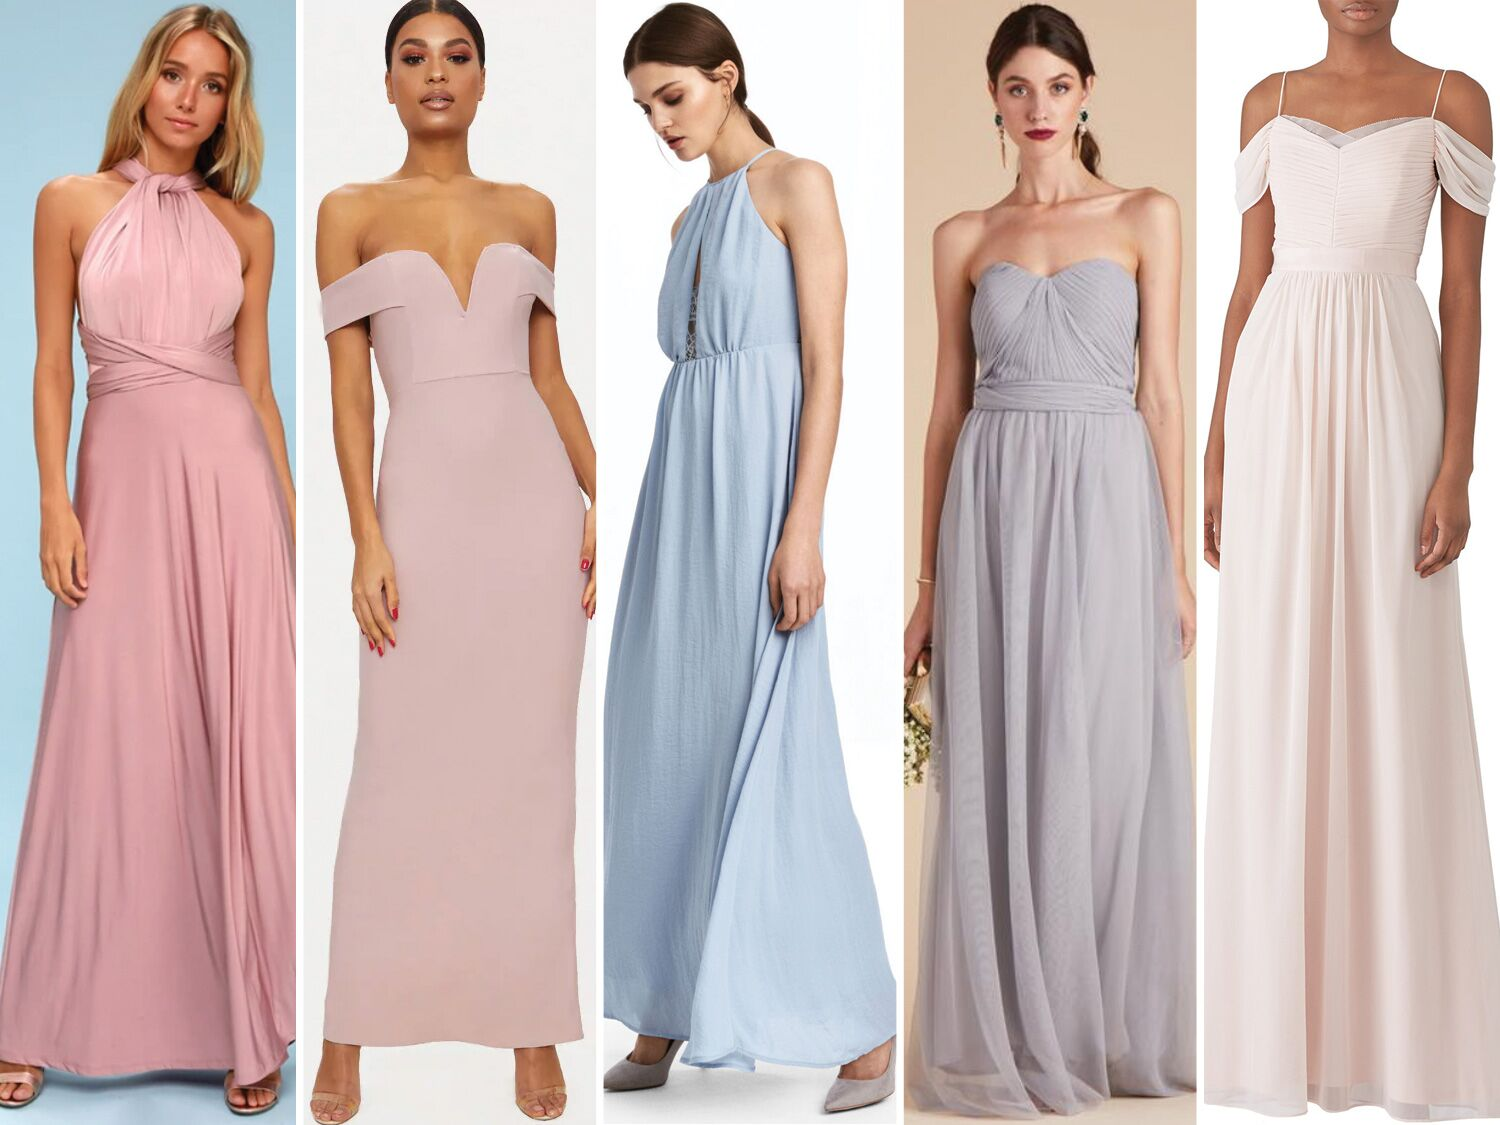 7b72b720c3 55 Affordable Bridesmaid Dresses That Don t Look Cheap